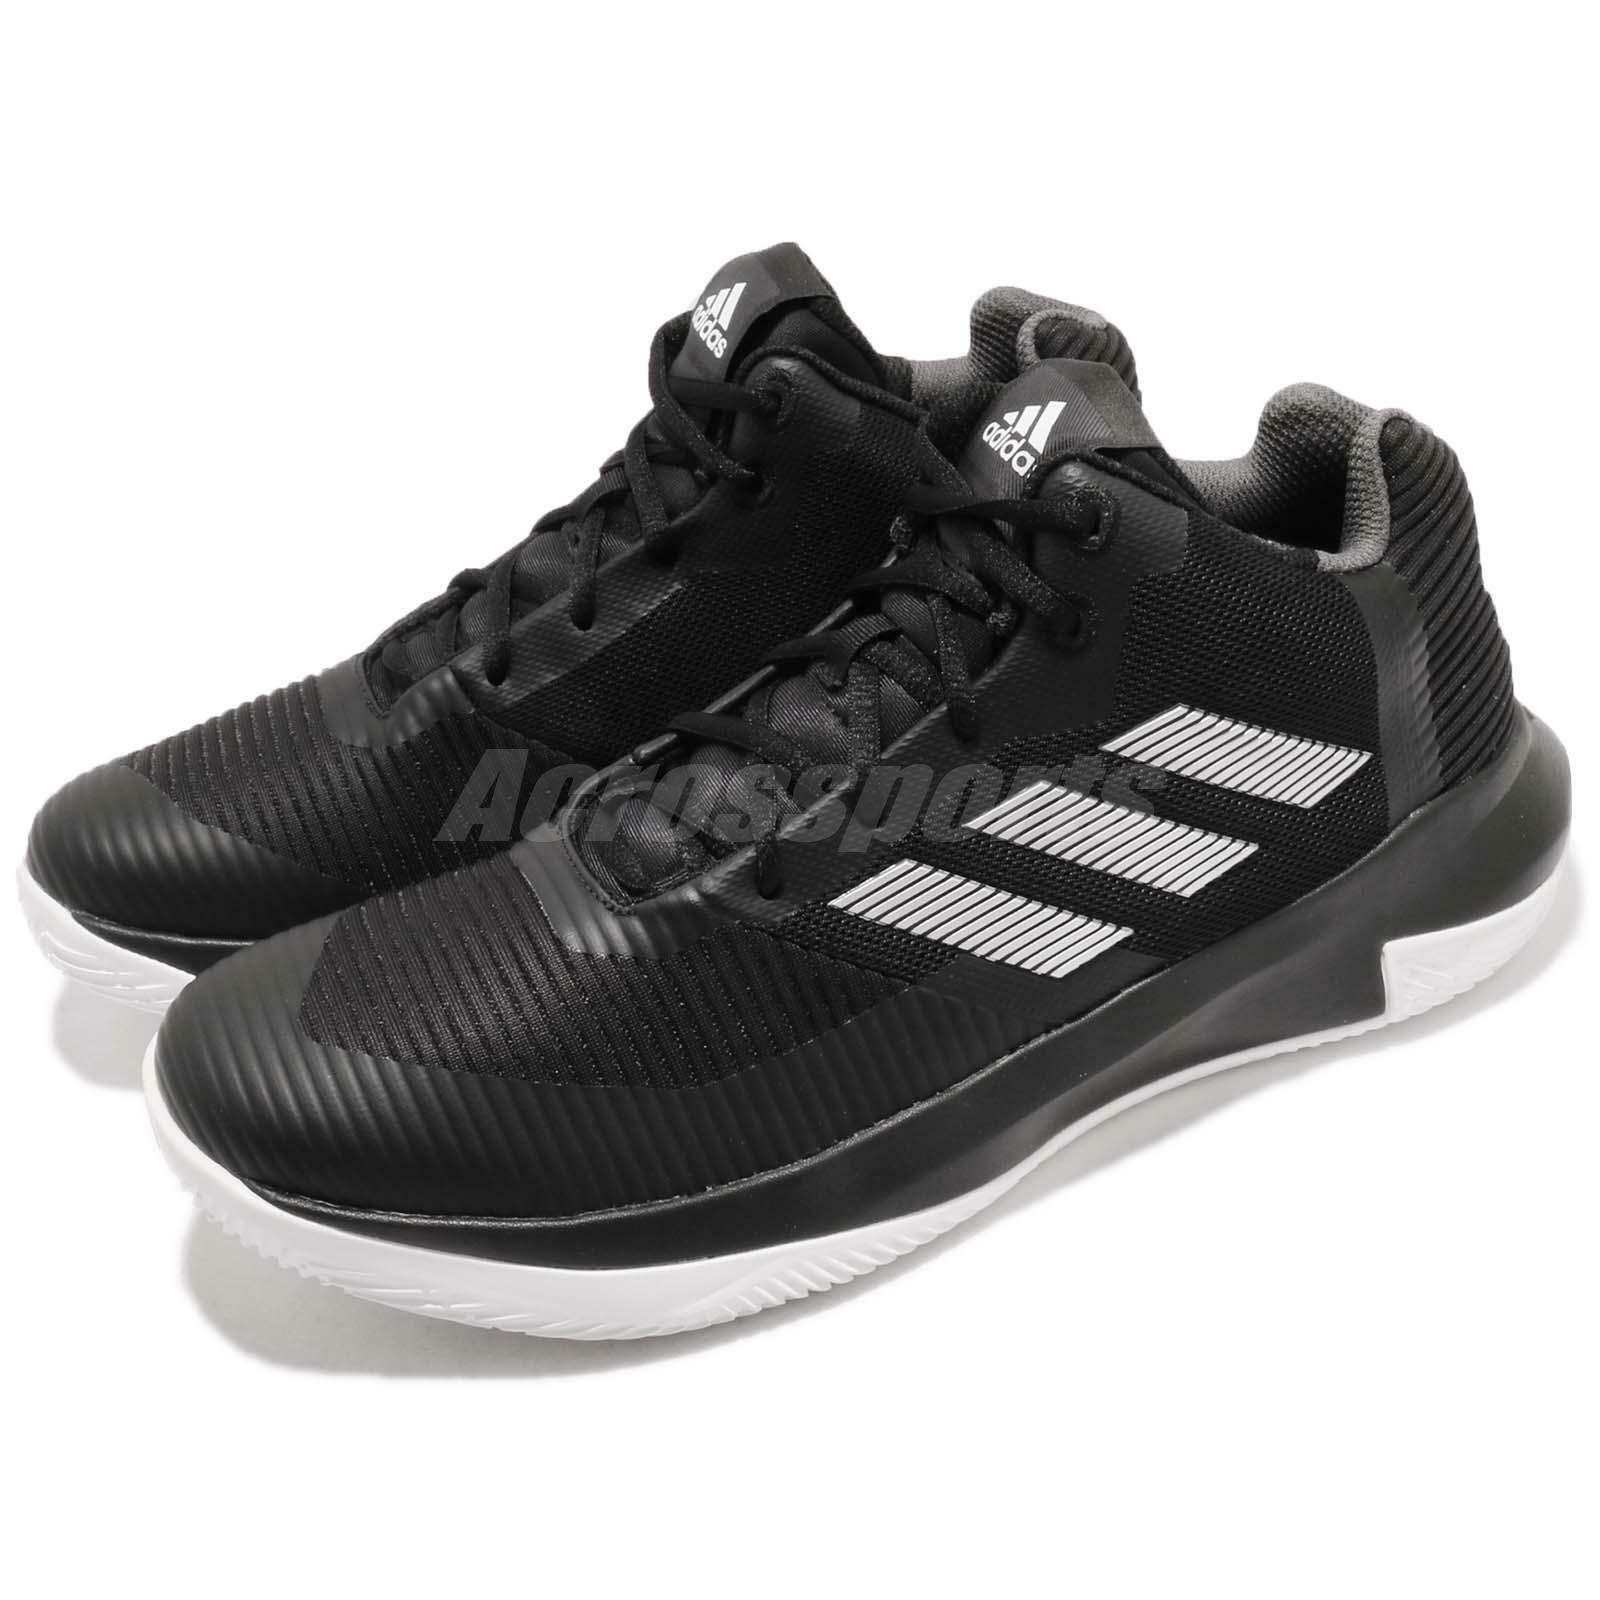 Adidas D pink Lethality Derrick Black White Mens Basketball shoes Sneaker AQ0043